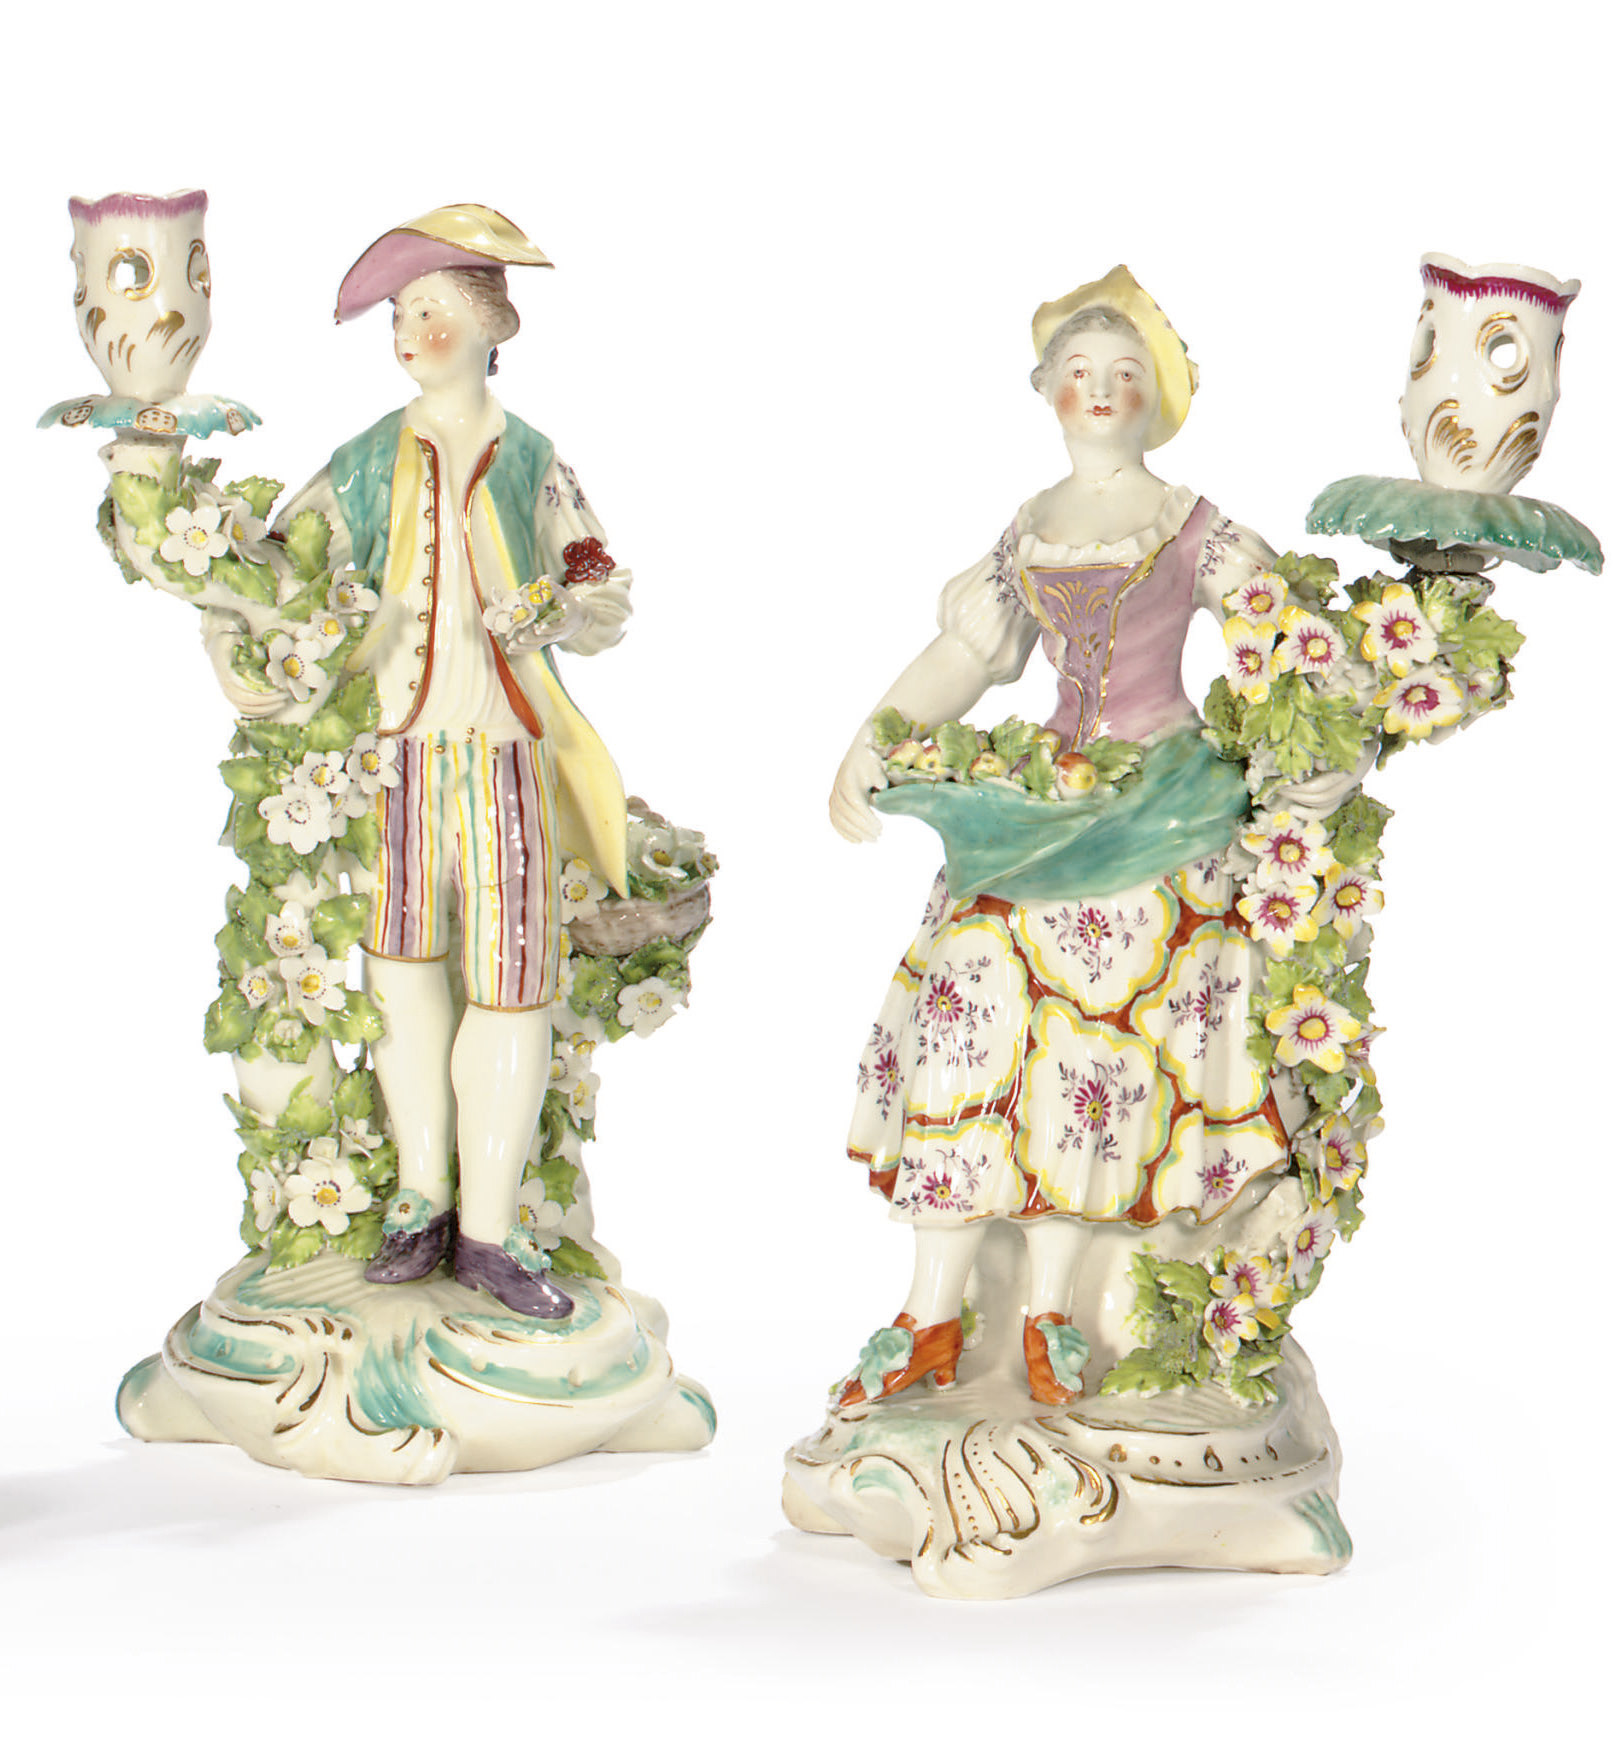 A PAIR OF DERBY BOCAGE CANDLES